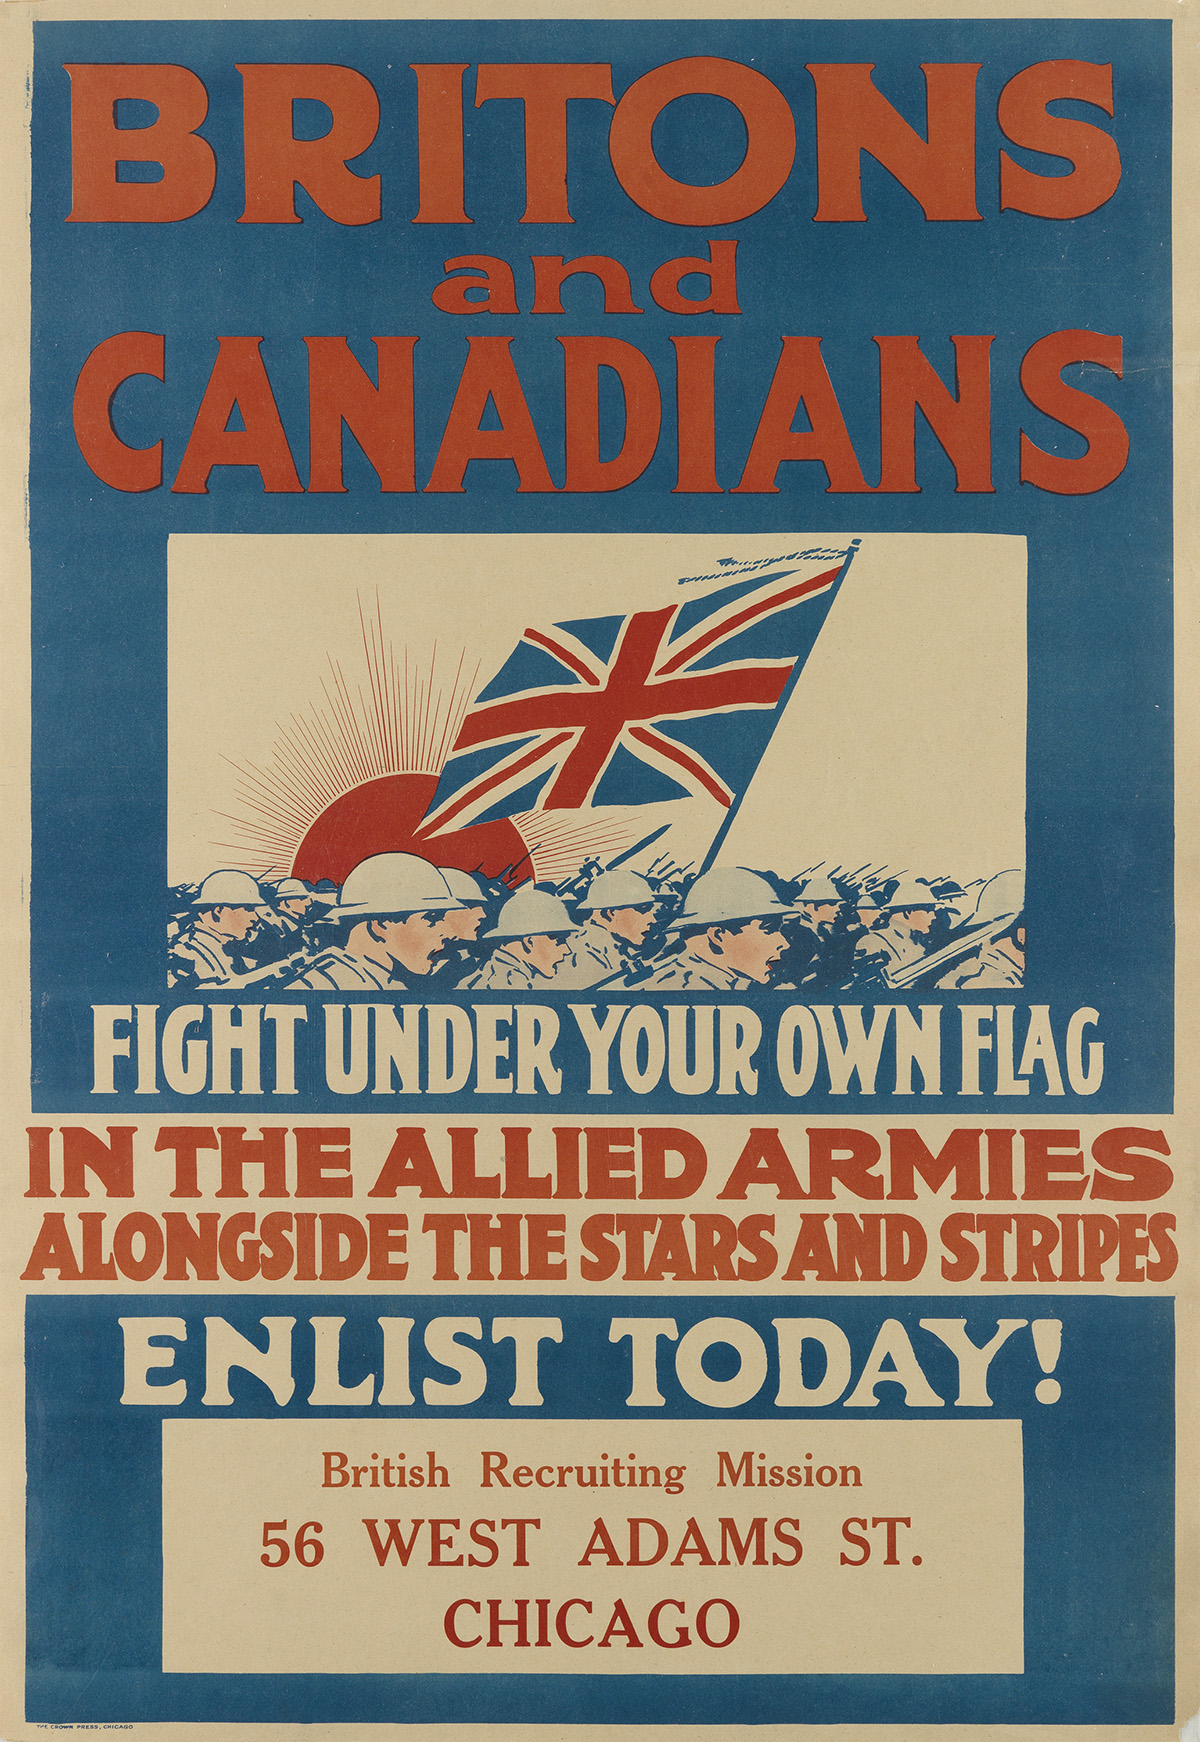 VARIOUS-ARTISTS-[WORLD-WAR-I]-Group-of-10-posters-Sizes-vary